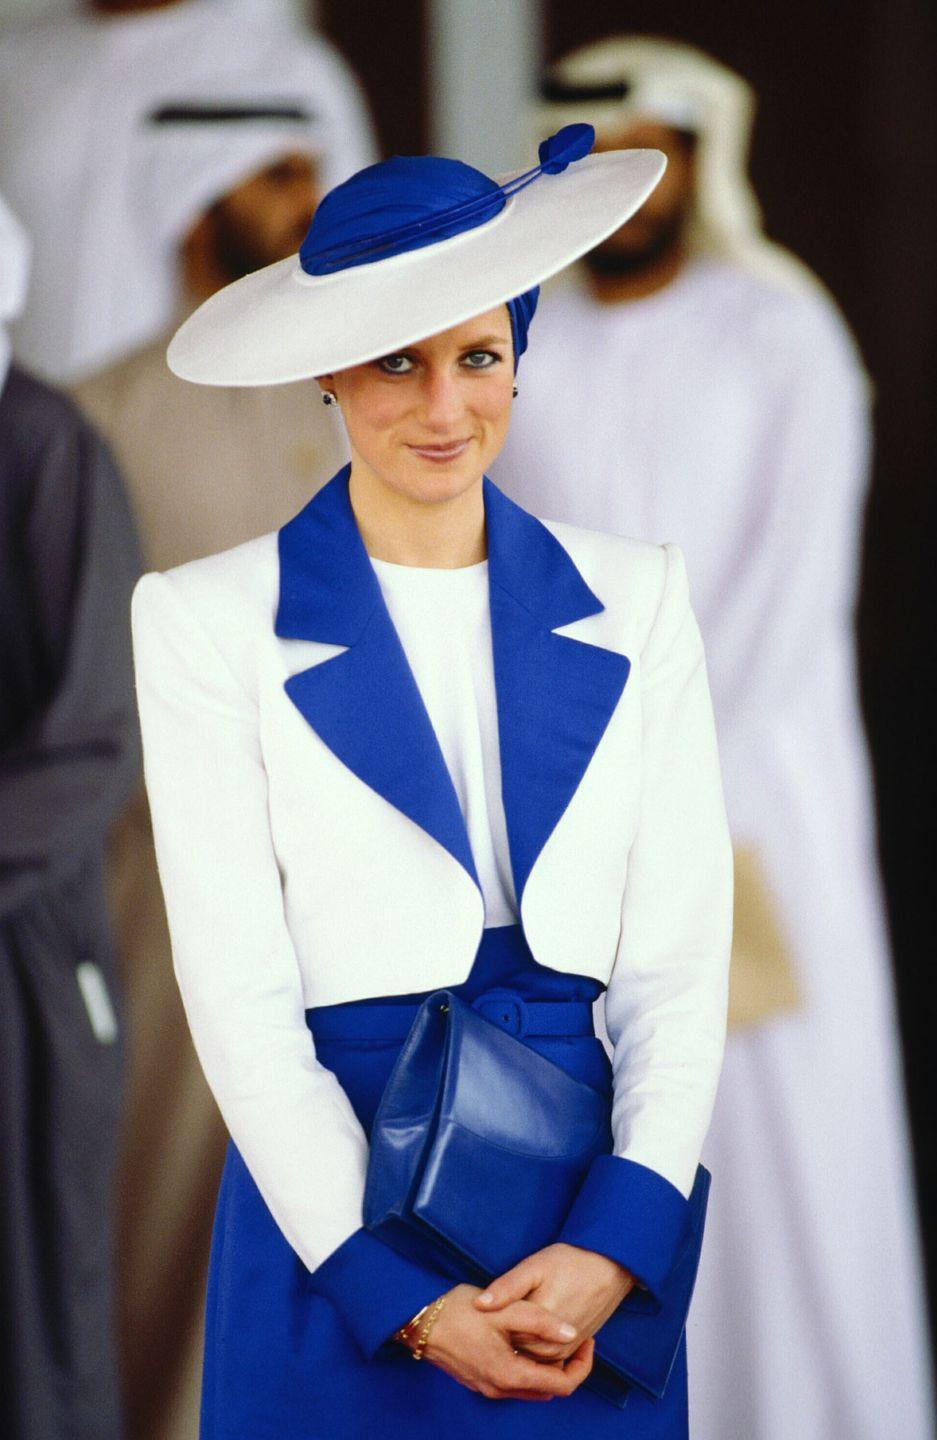 <p>As soon as she became a royal, Diana became an instant style icon. And it's obvious why. She was always smartly dressed and her hats were to die for. </p>